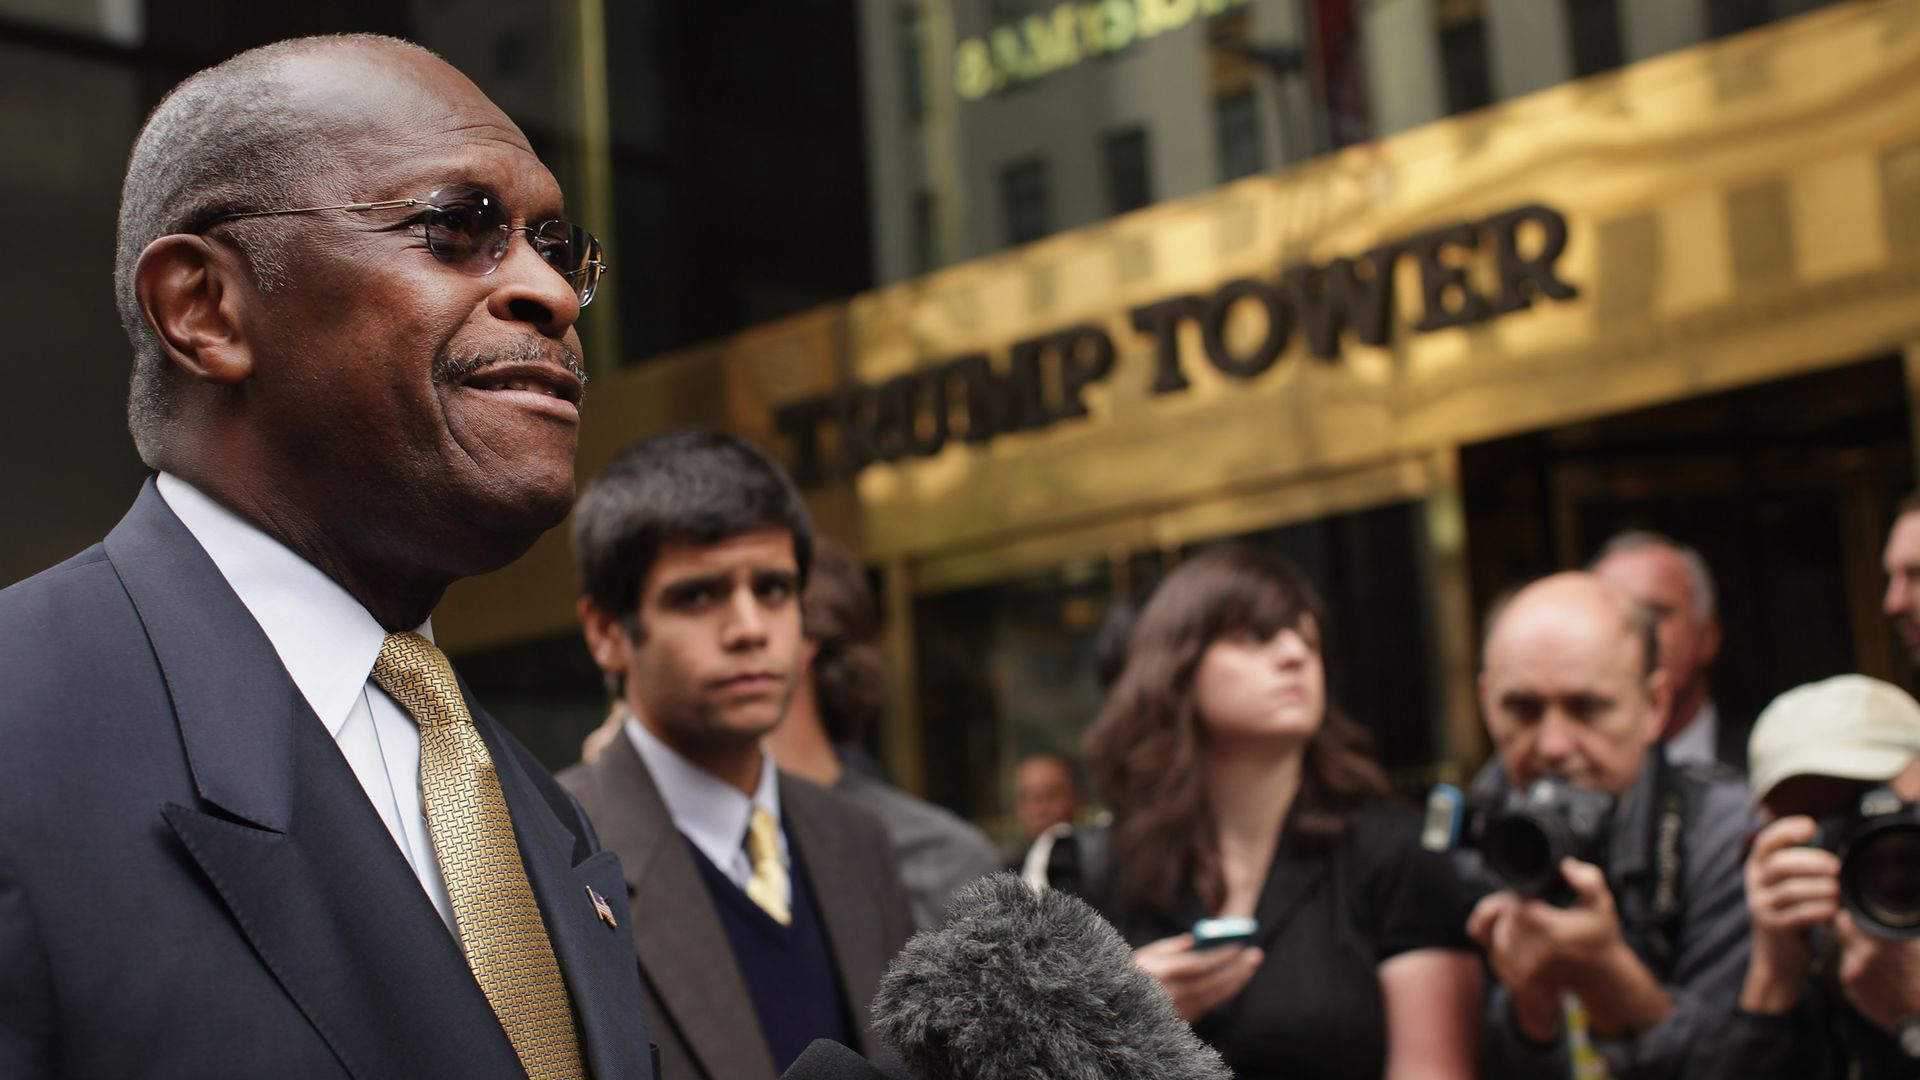 Herman Cain speaks to reporters in front of Trump Tower.